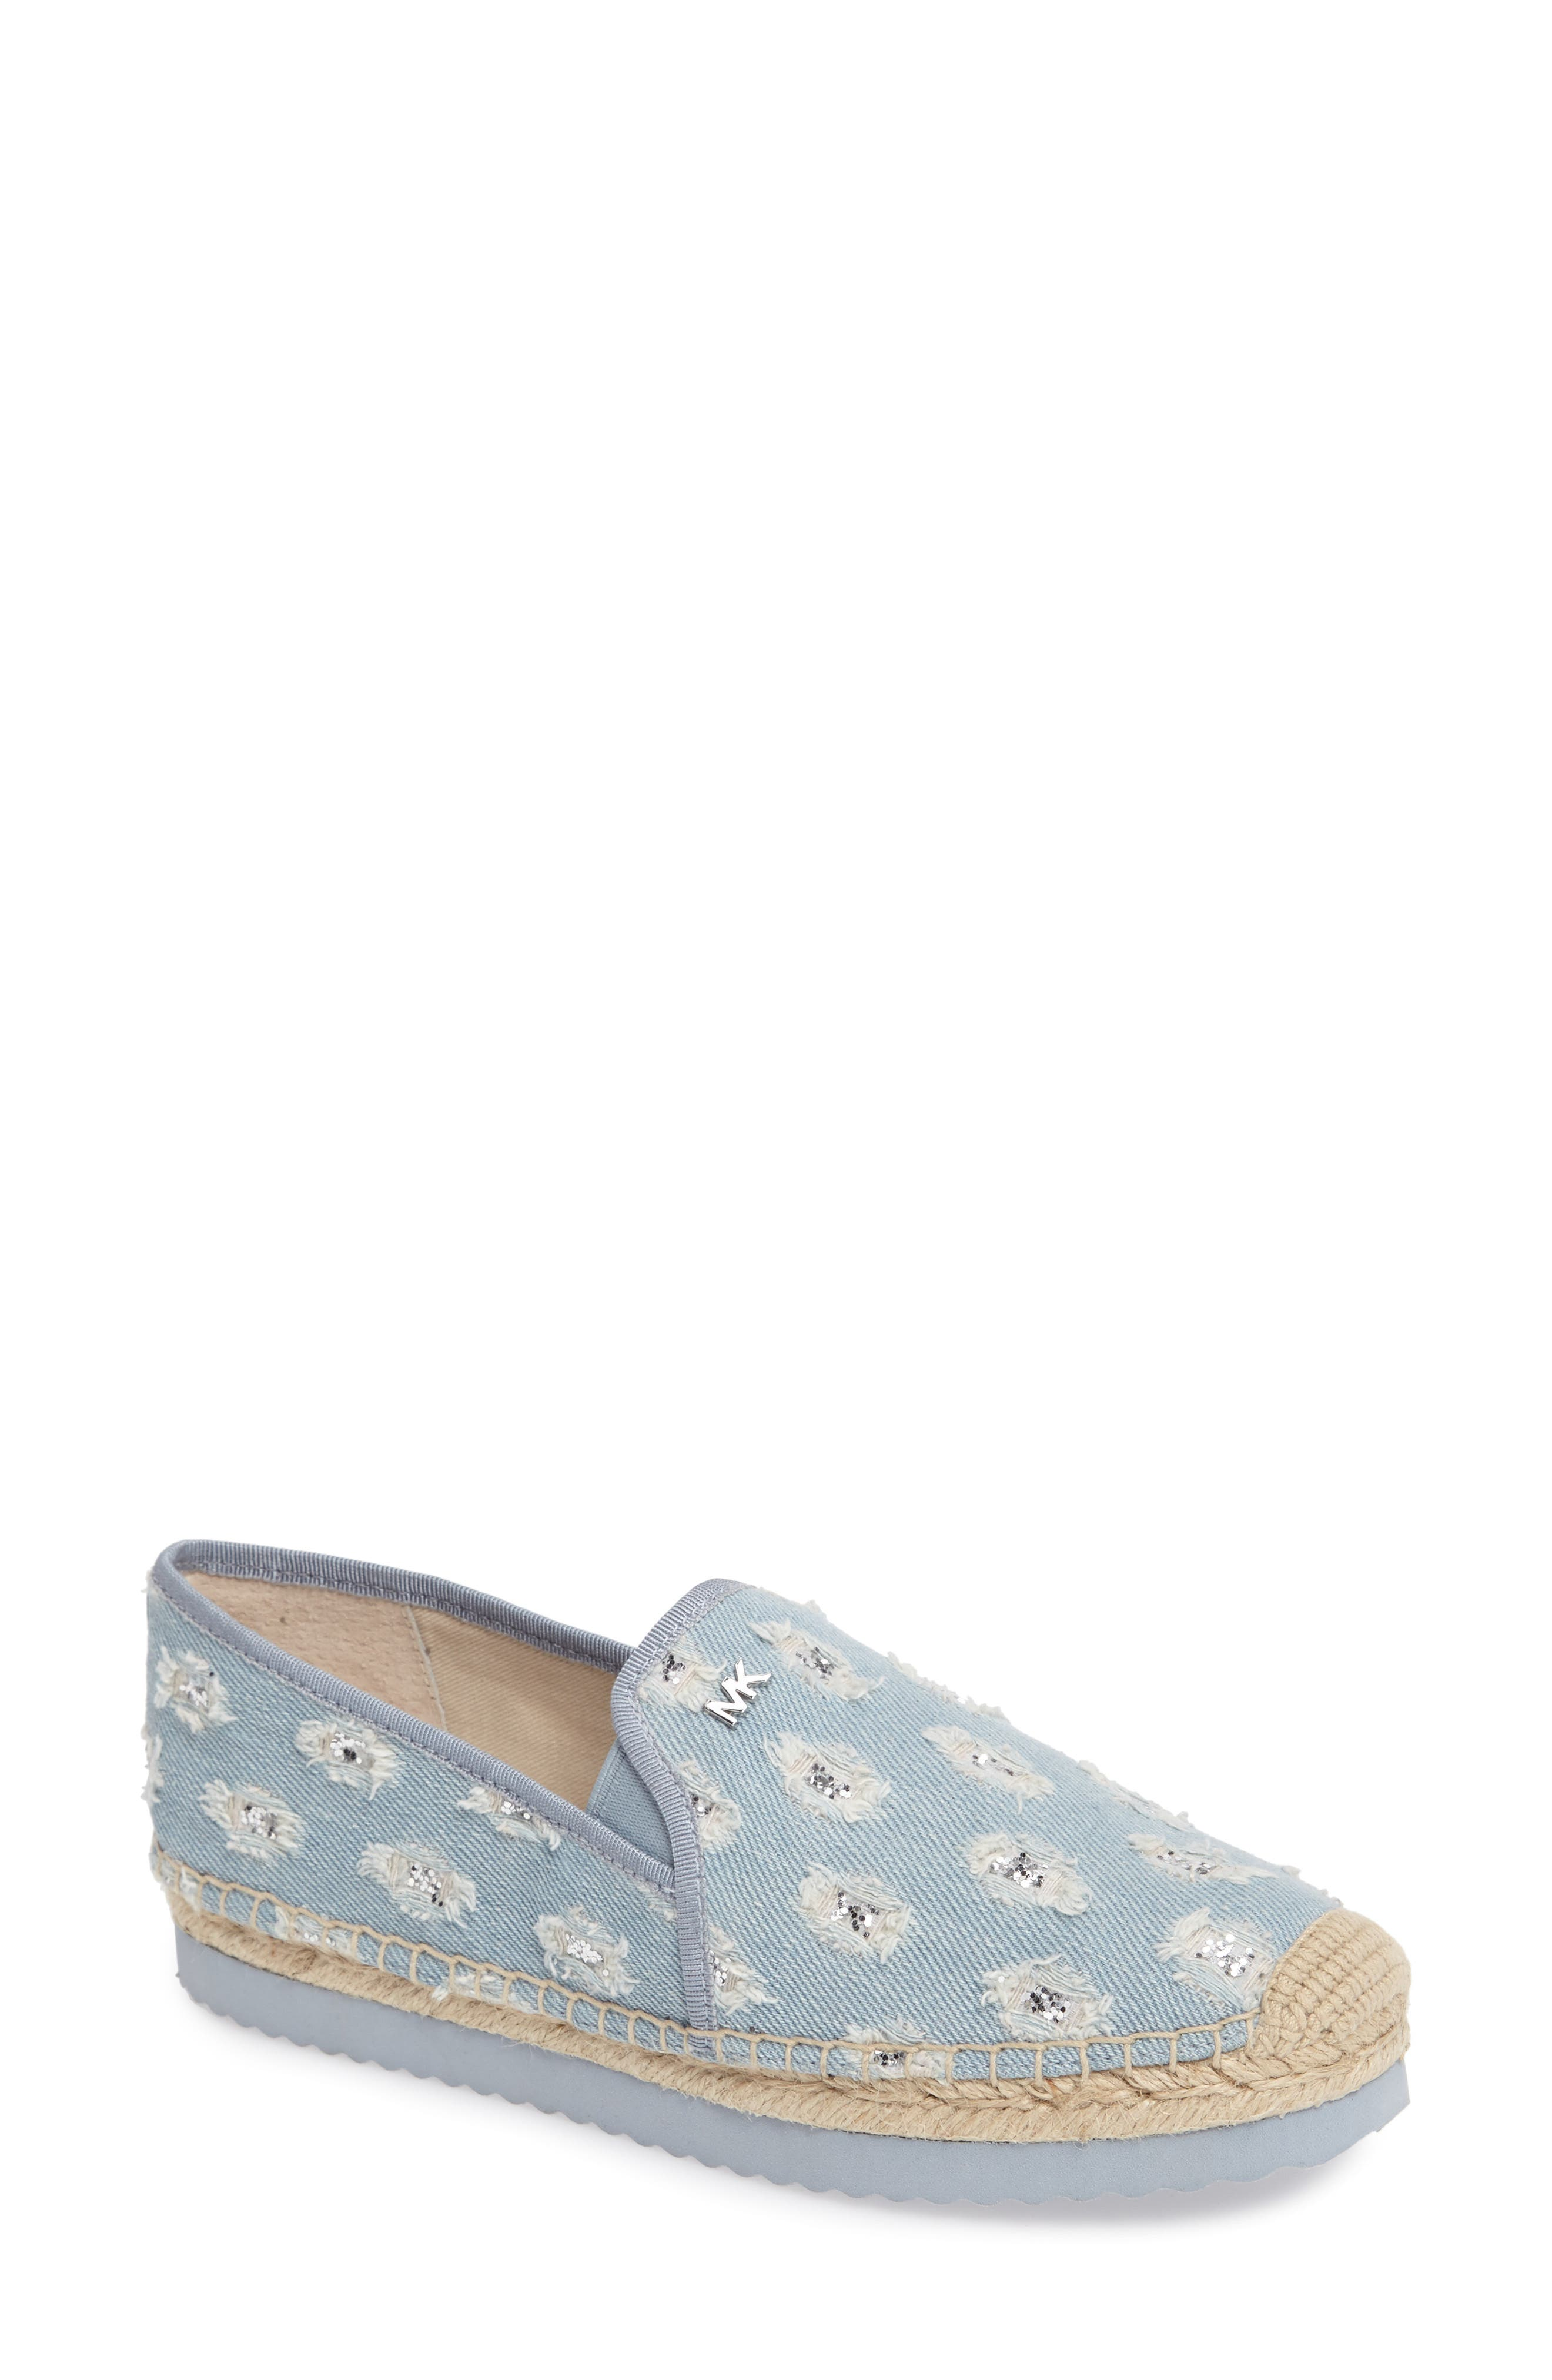 Hastings Espadrille Slip-On,                             Main thumbnail 5, color,